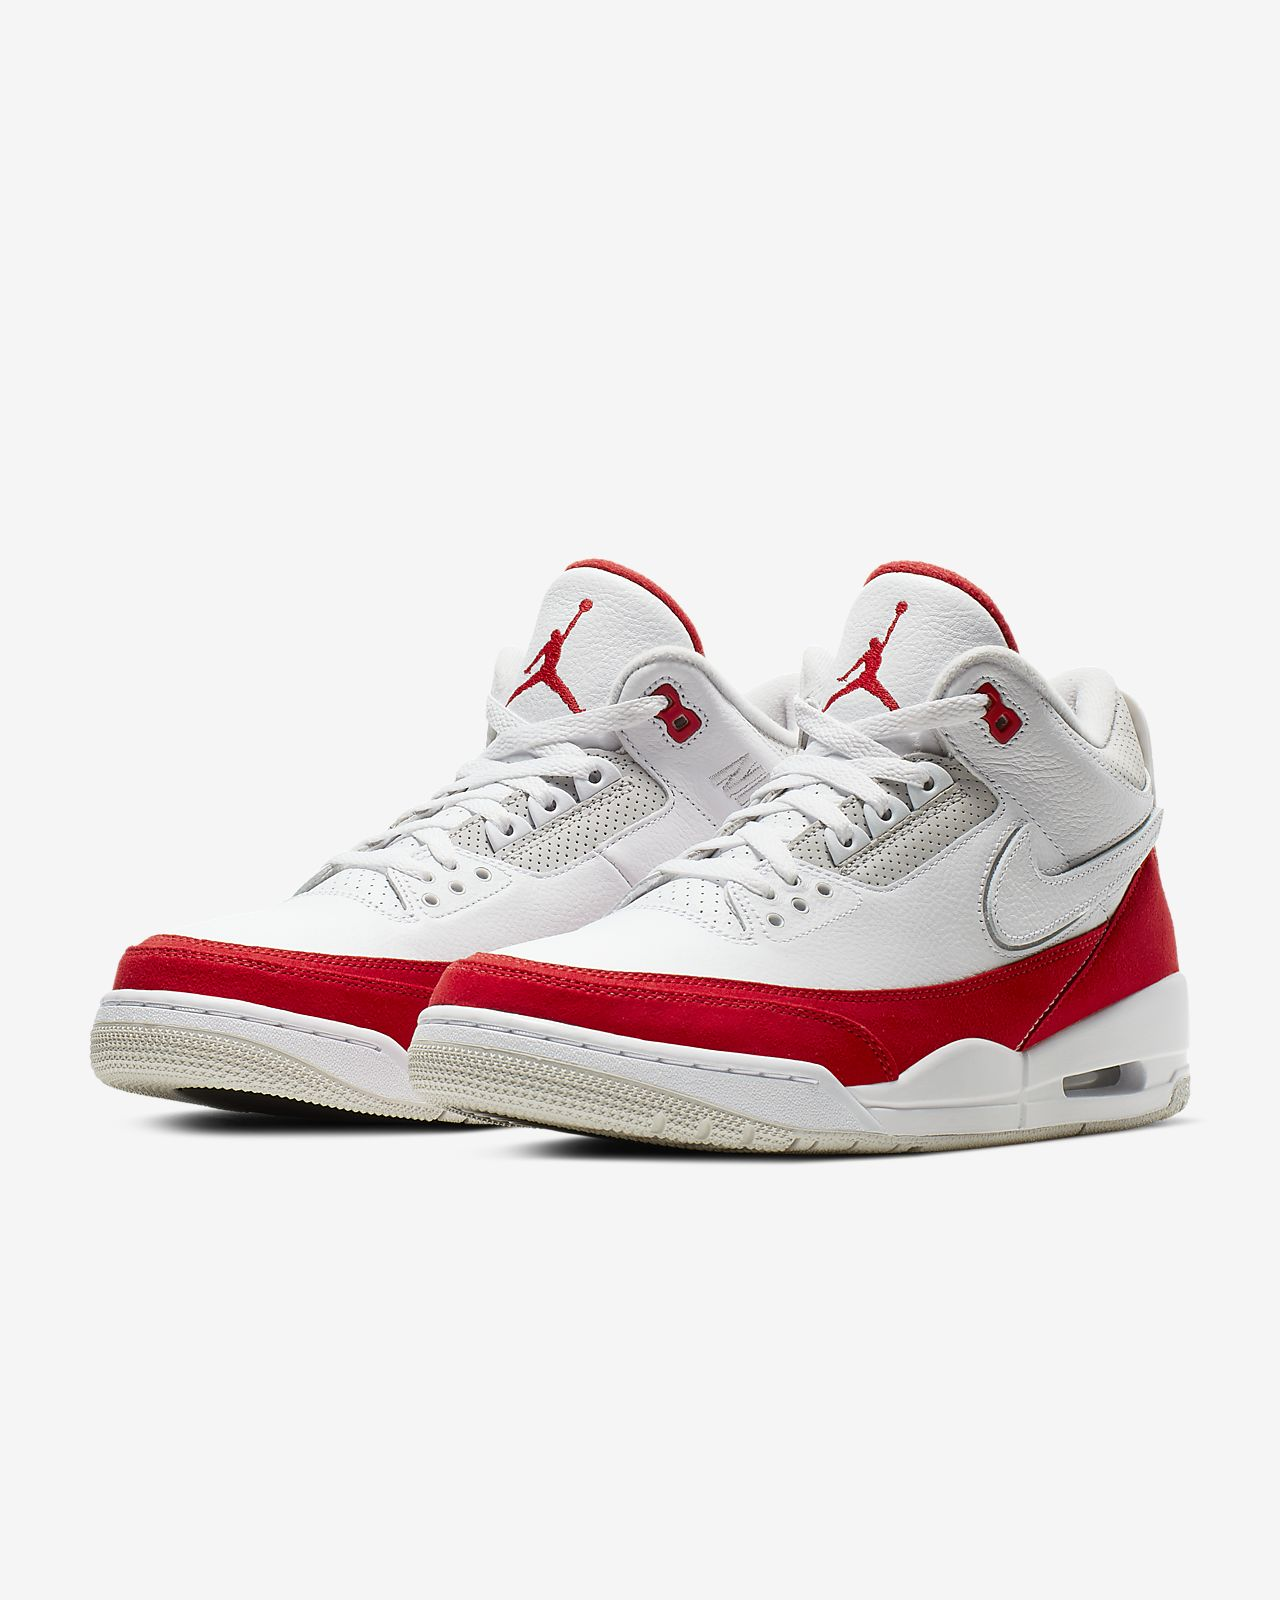 8f01a58c75cb Air Jordan 3 Retro TH SP Men s Shoe. Nike.com